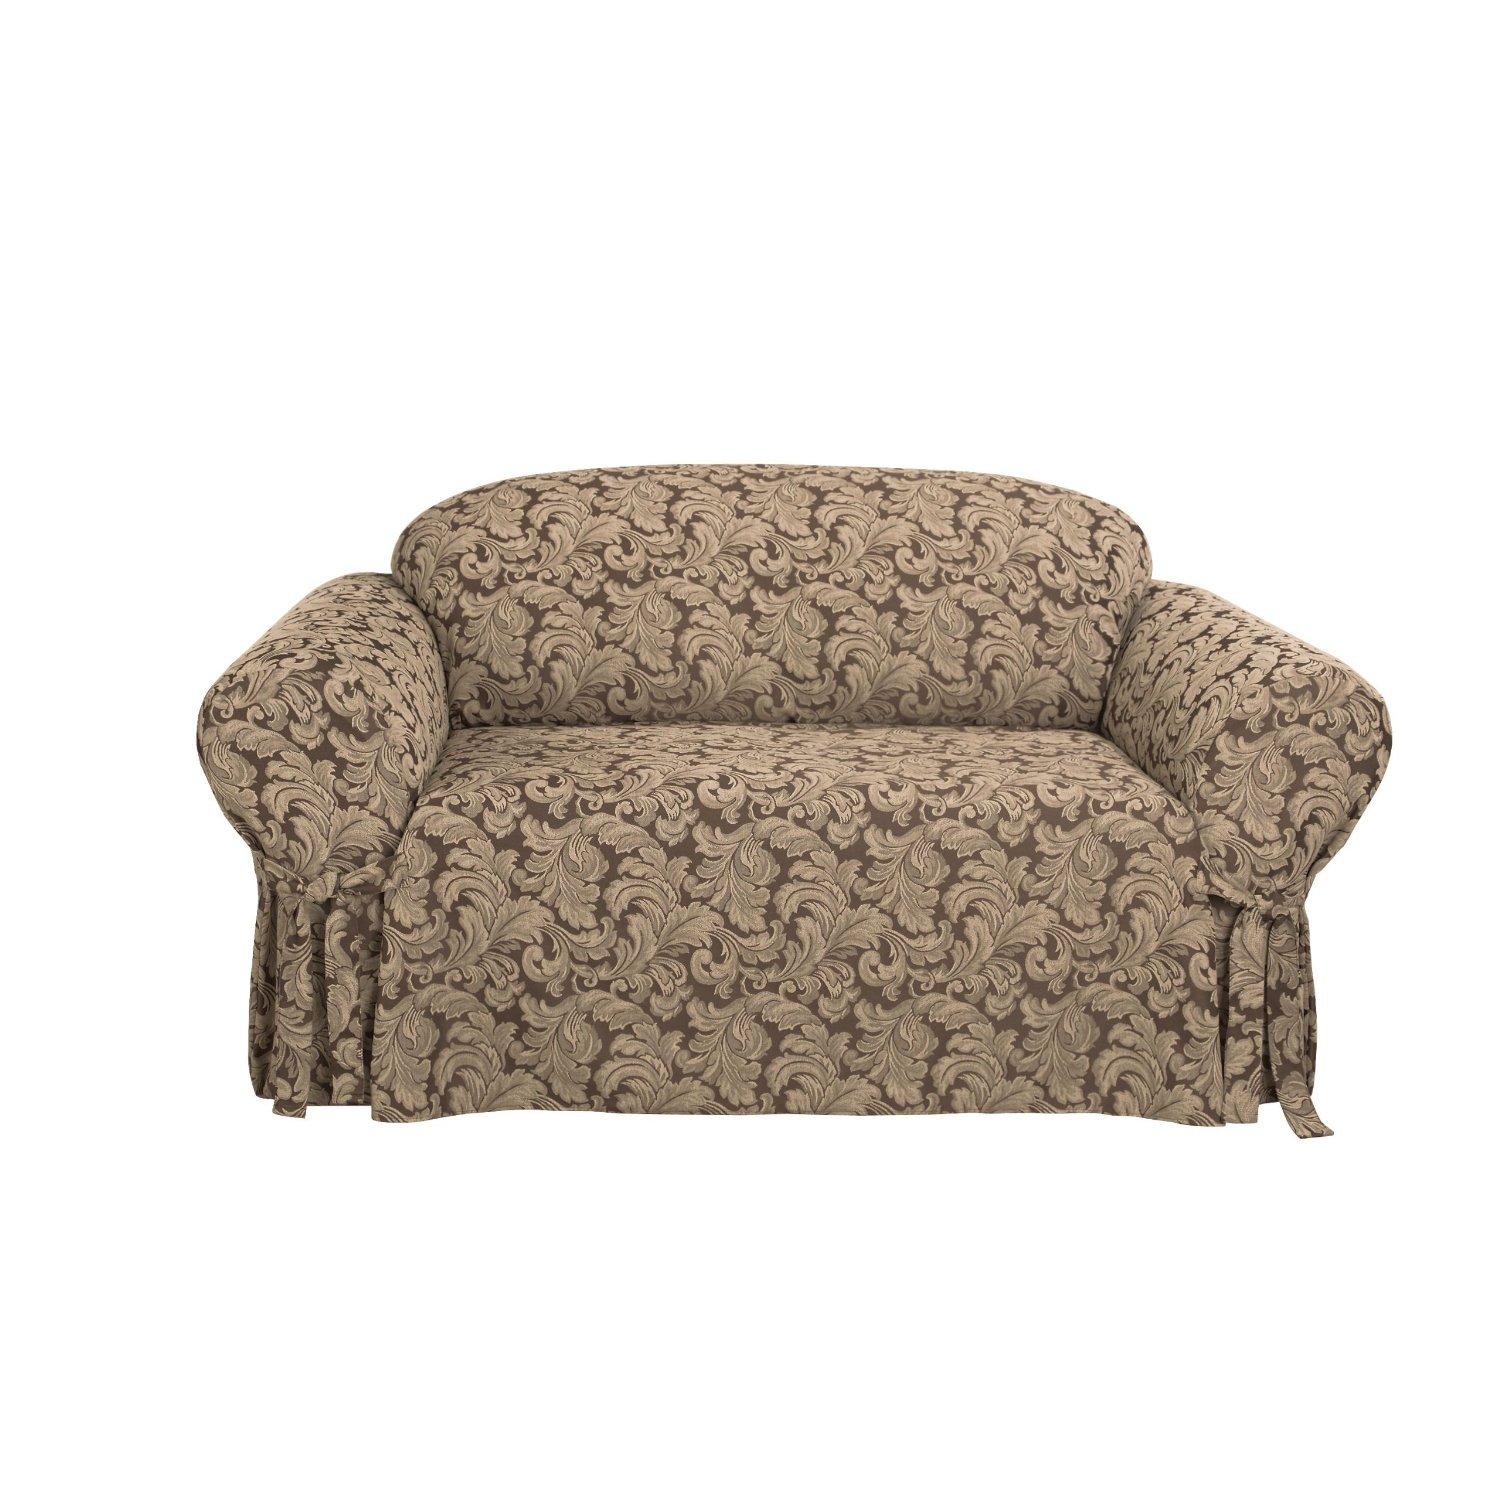 Photo Gallery Of The Cheap Couch Covers Bed Bath And Beyond